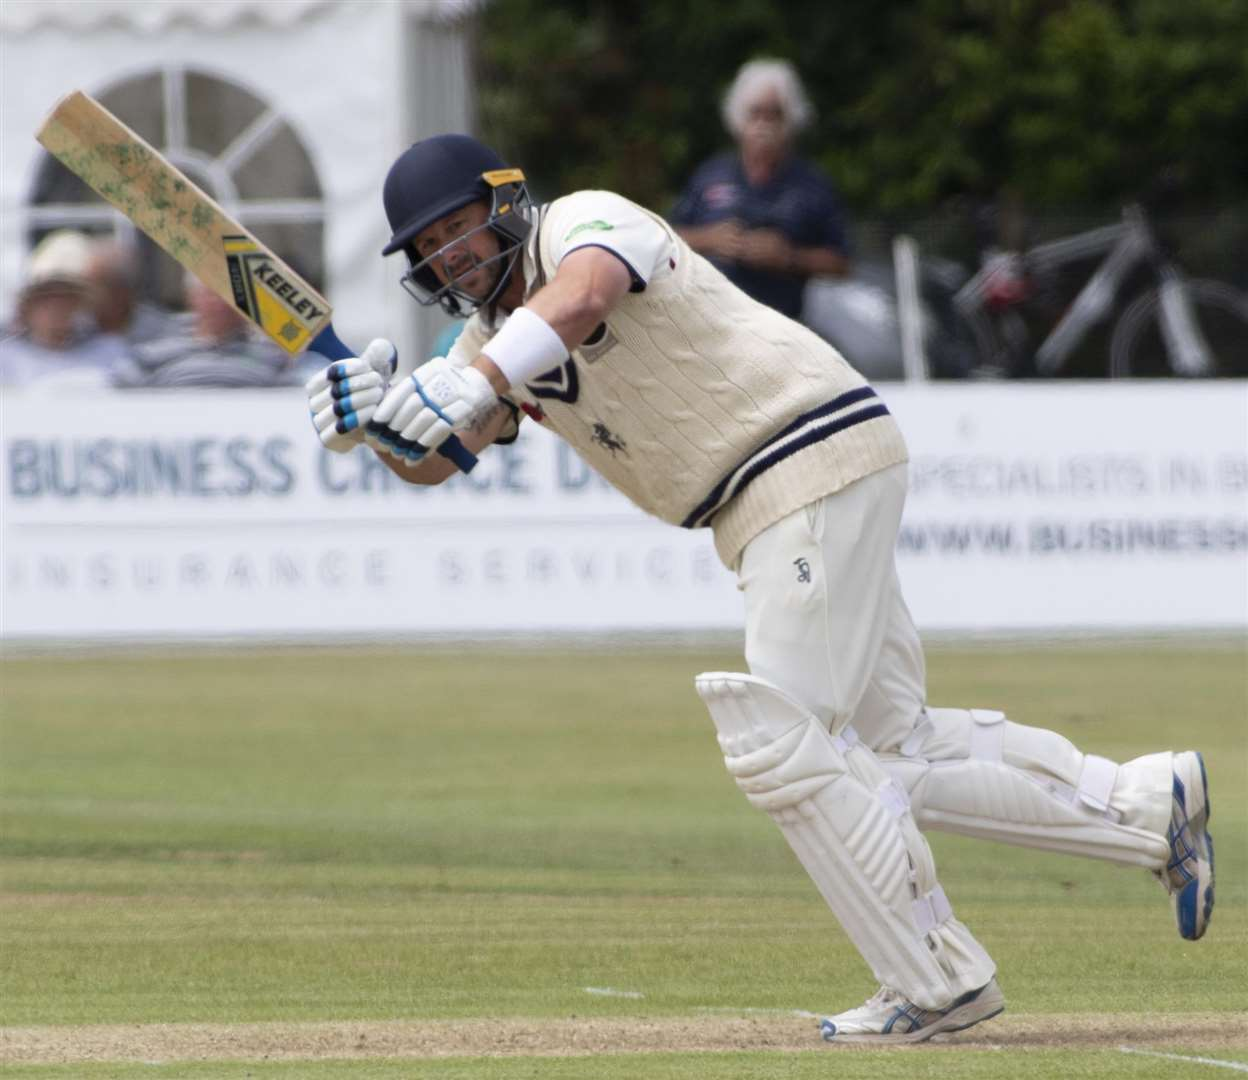 Runs have been hard to come by for Darren Stevens in the County Championship this summer. Picture: Andy Payton